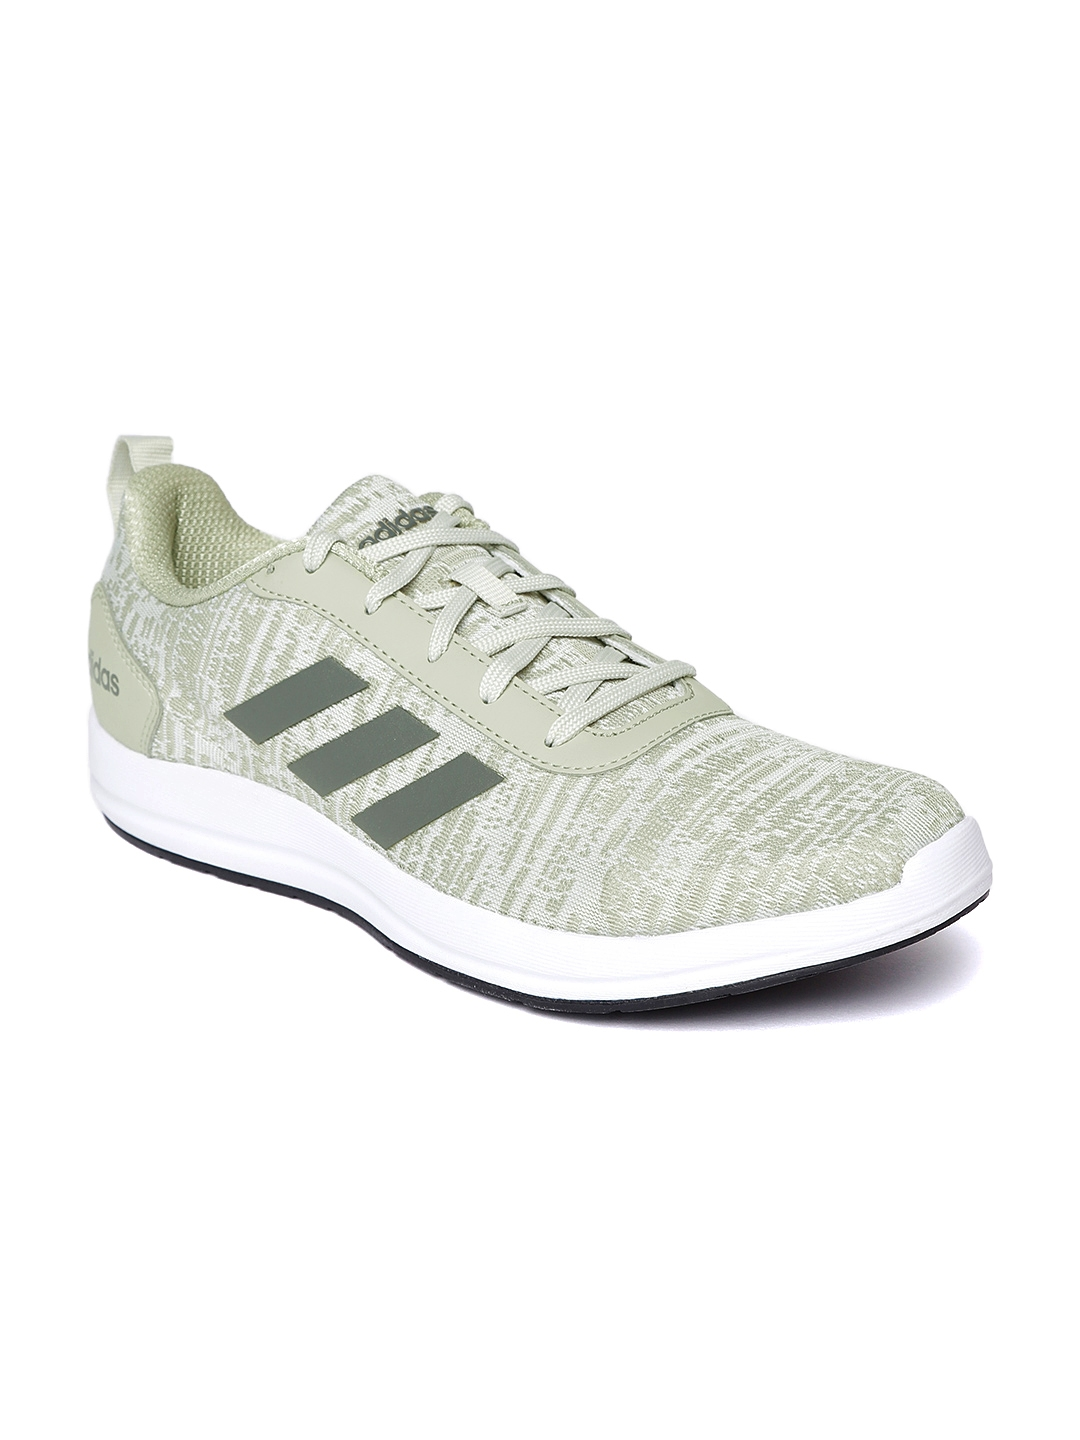 235ce8260a05 Buy ADIDAS Men Grey   Olive Green VIDELL Running Shoes - Sports ...